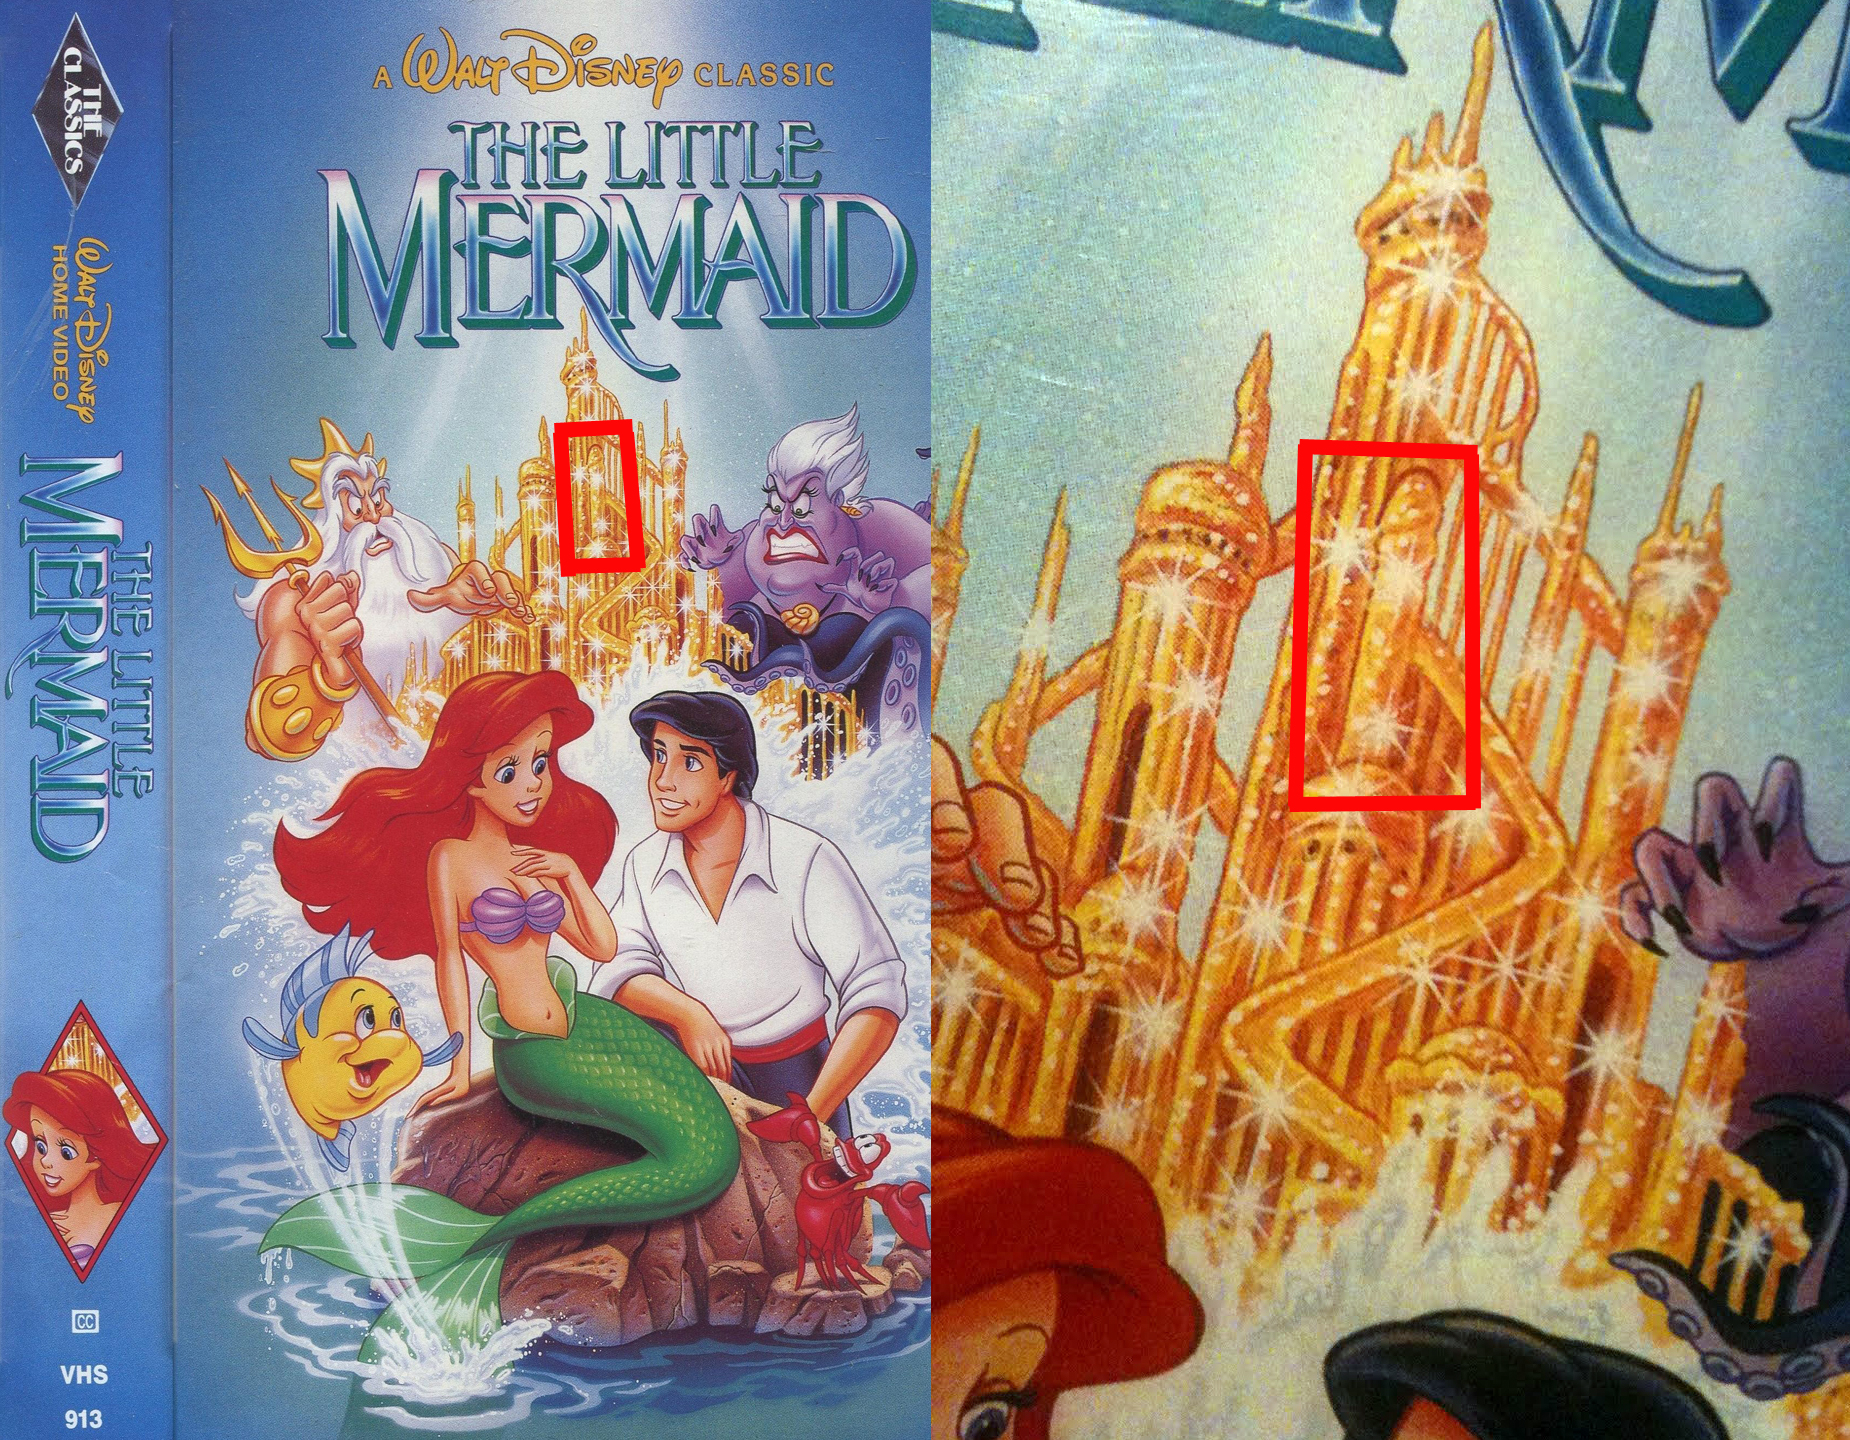 Little mermaid sex pics porno image